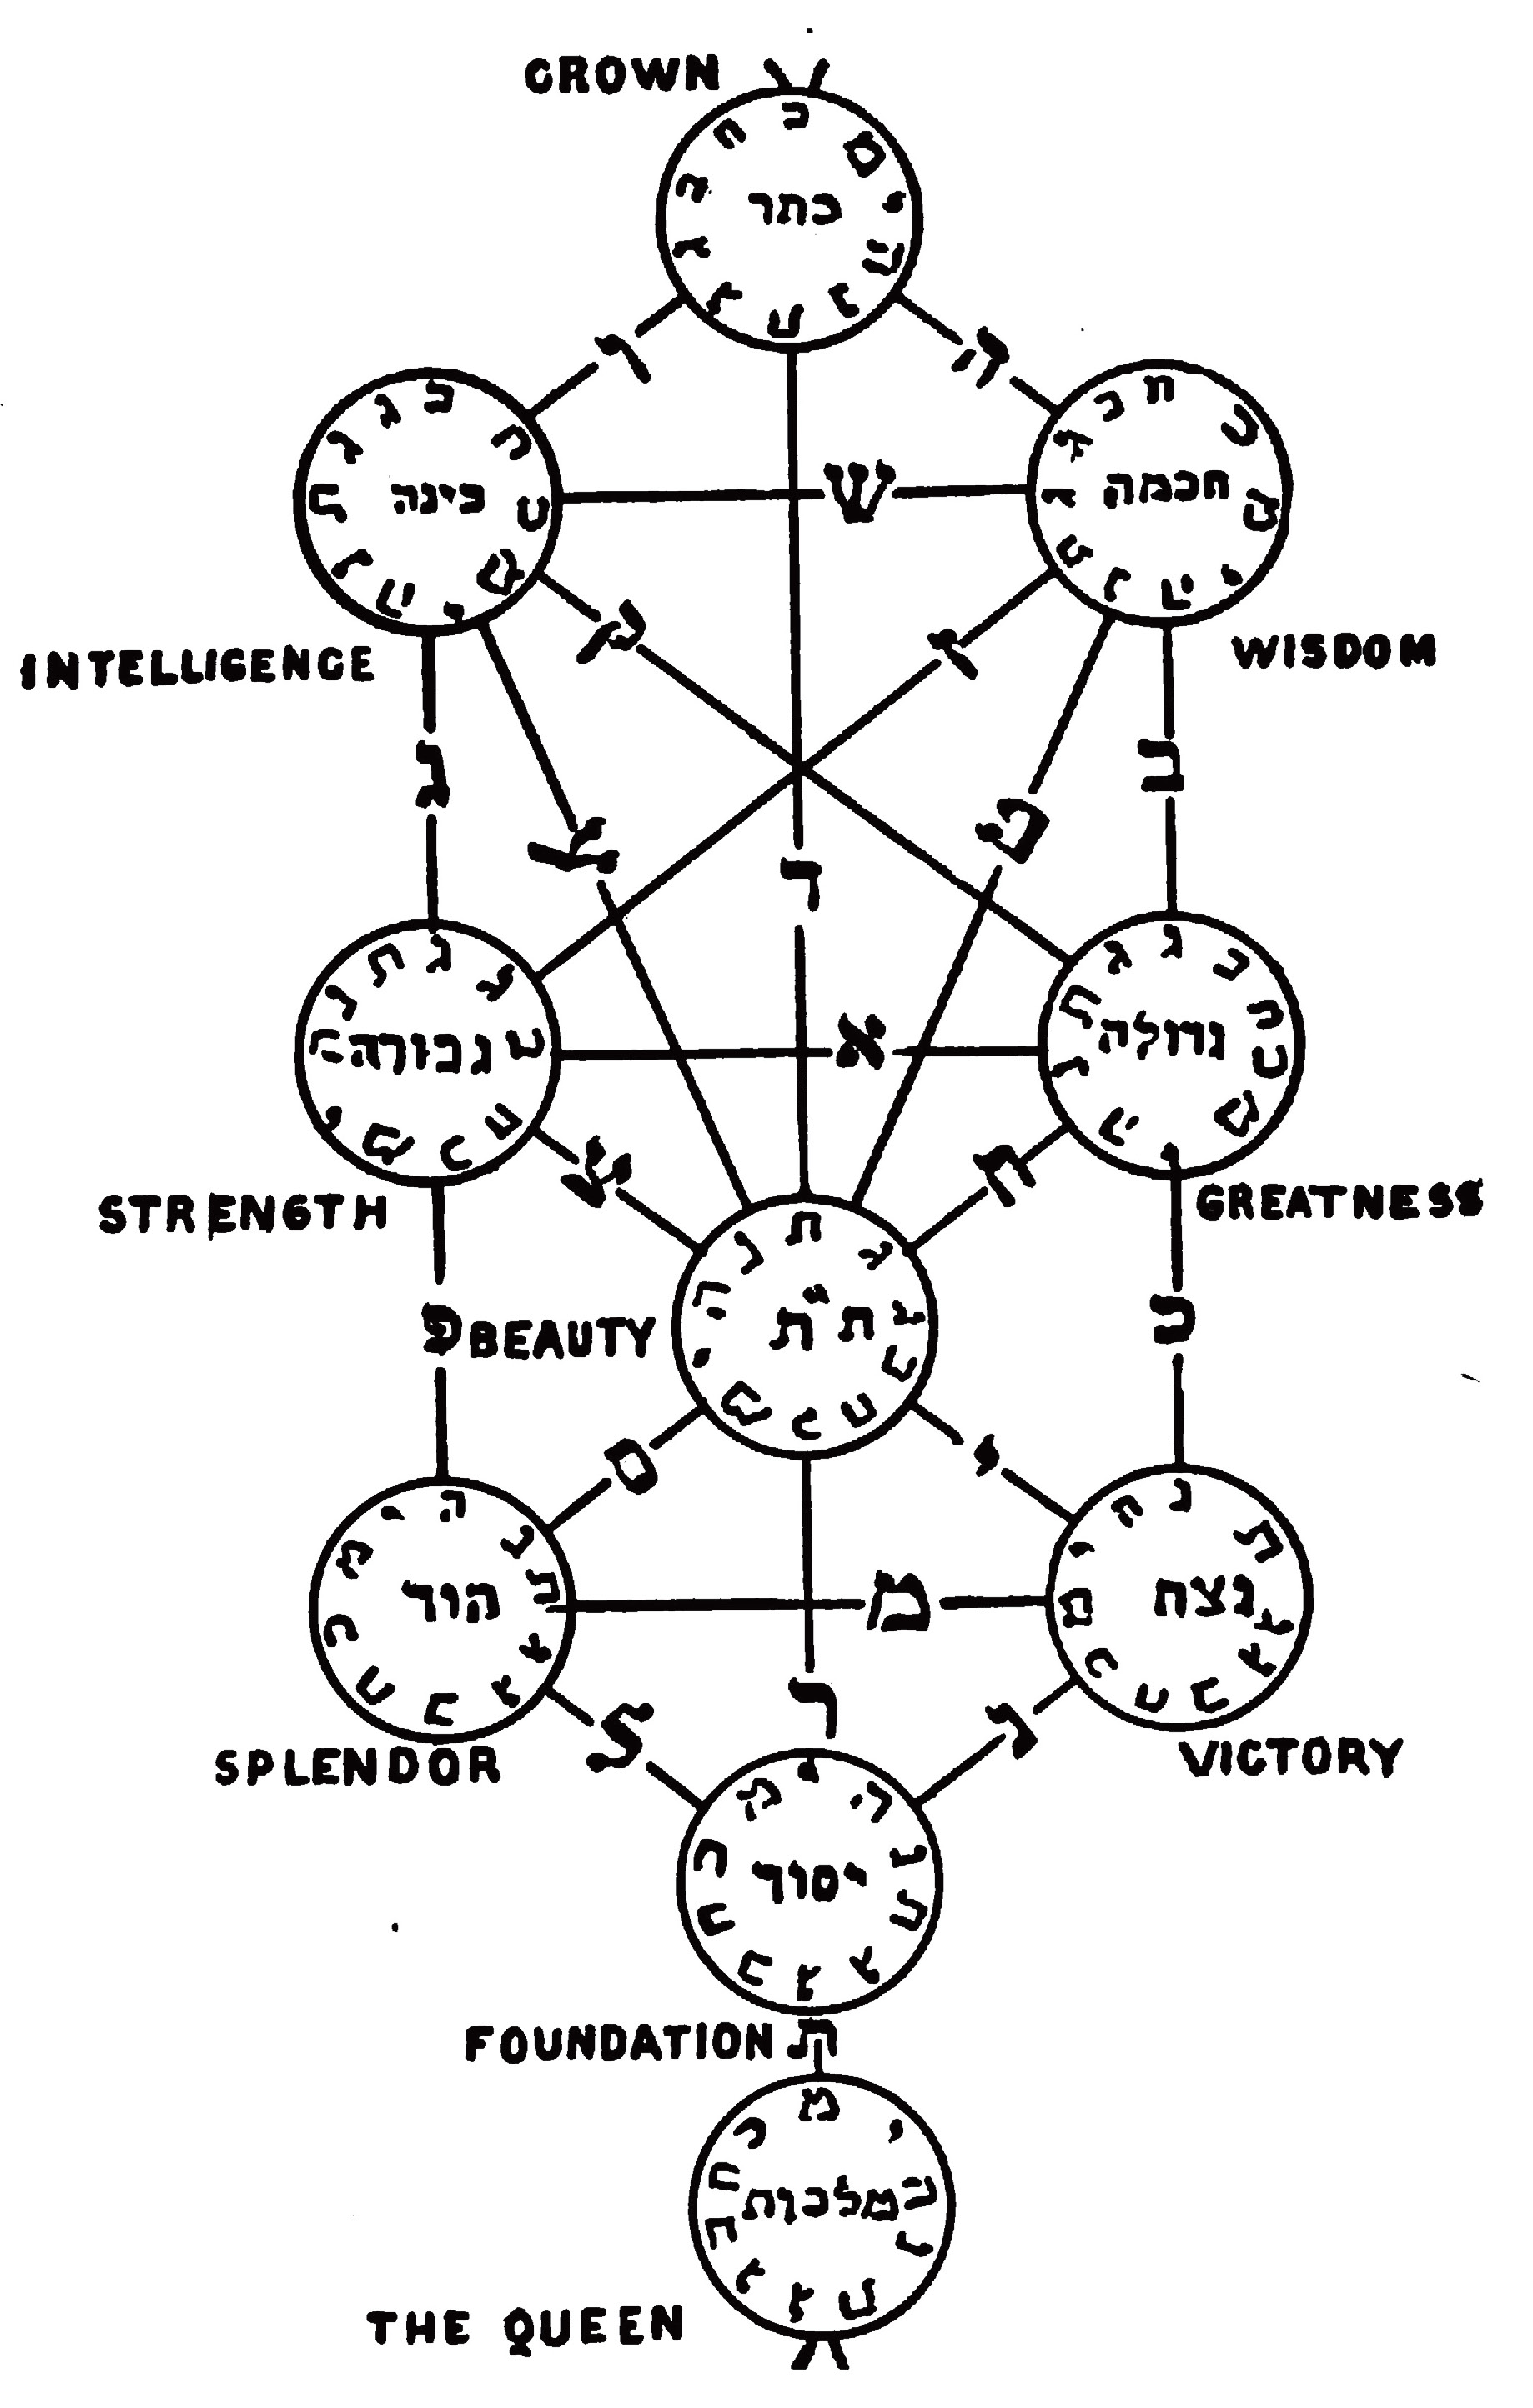 KRUGMAN's Theosophical Tree of Life